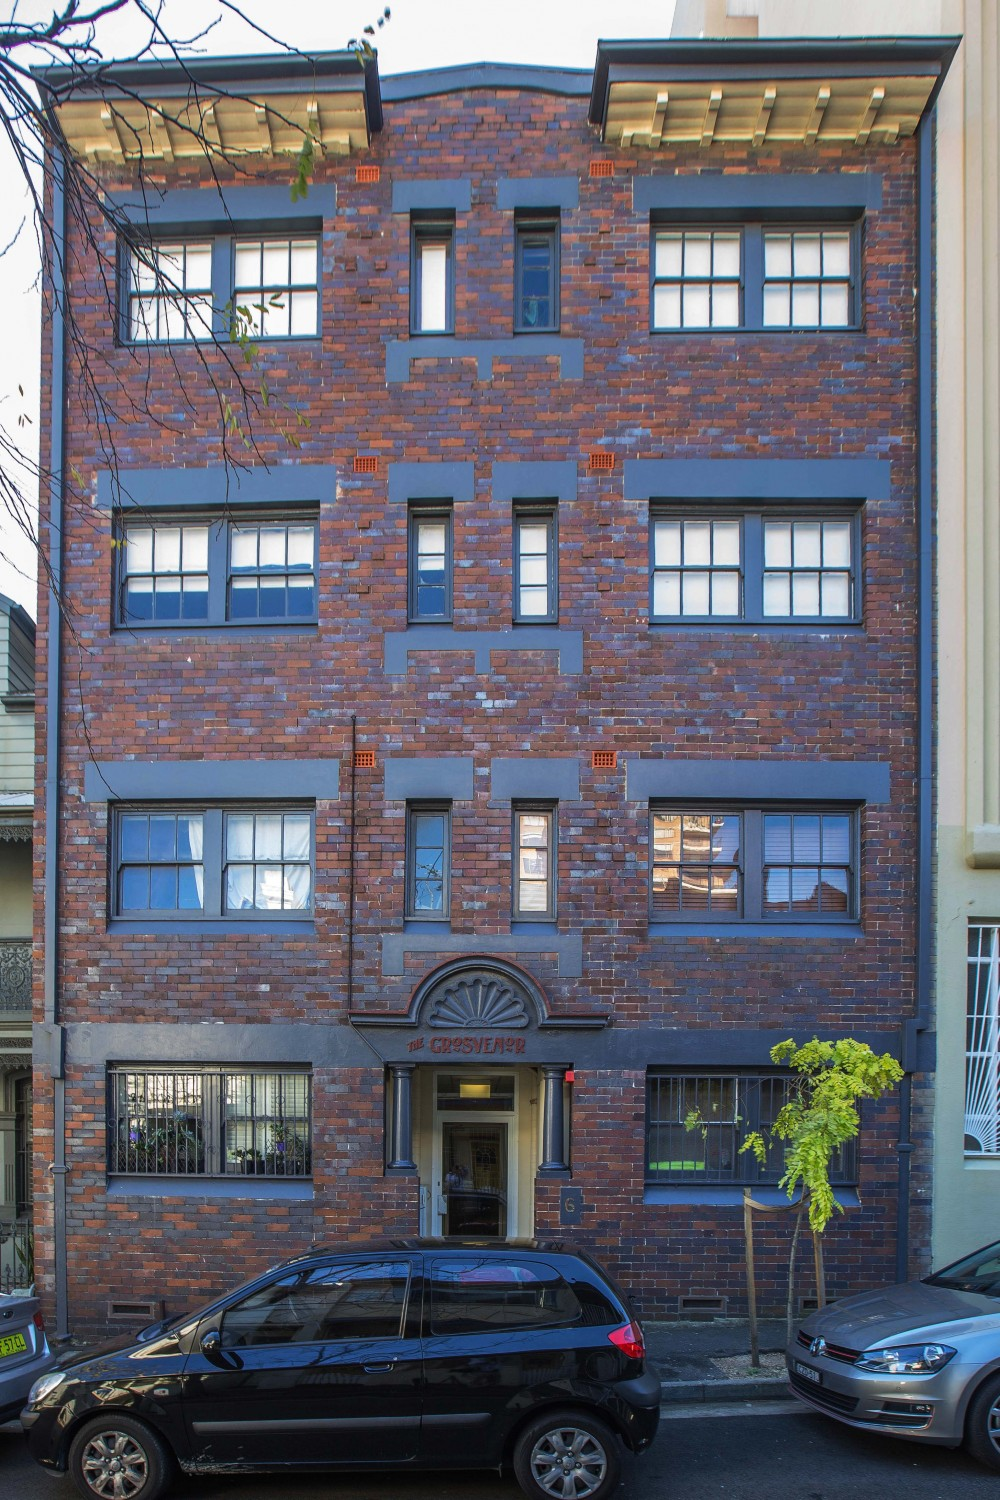 Property For Sale in Potts Point